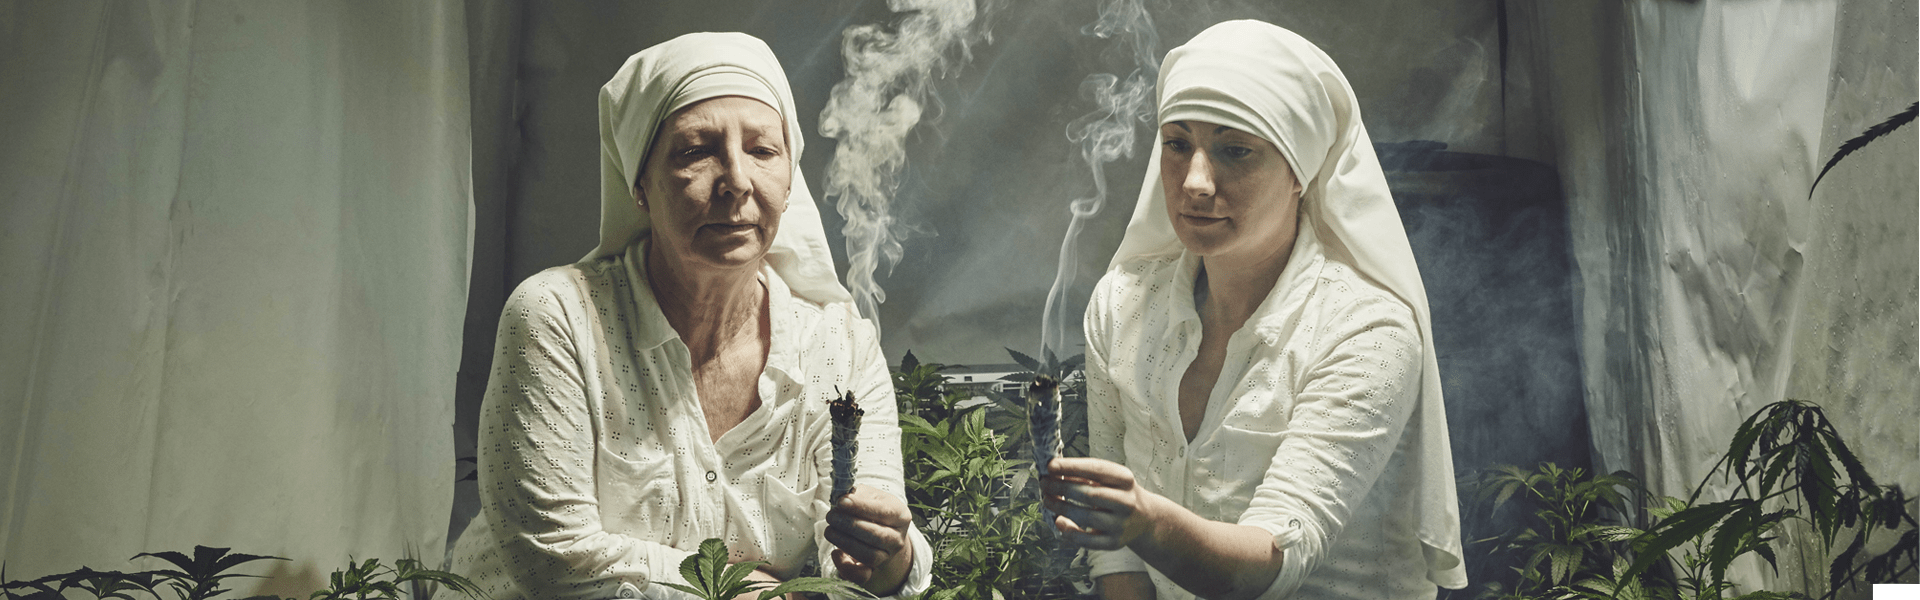 Nation tas monjas crean productos hechos de cannabis